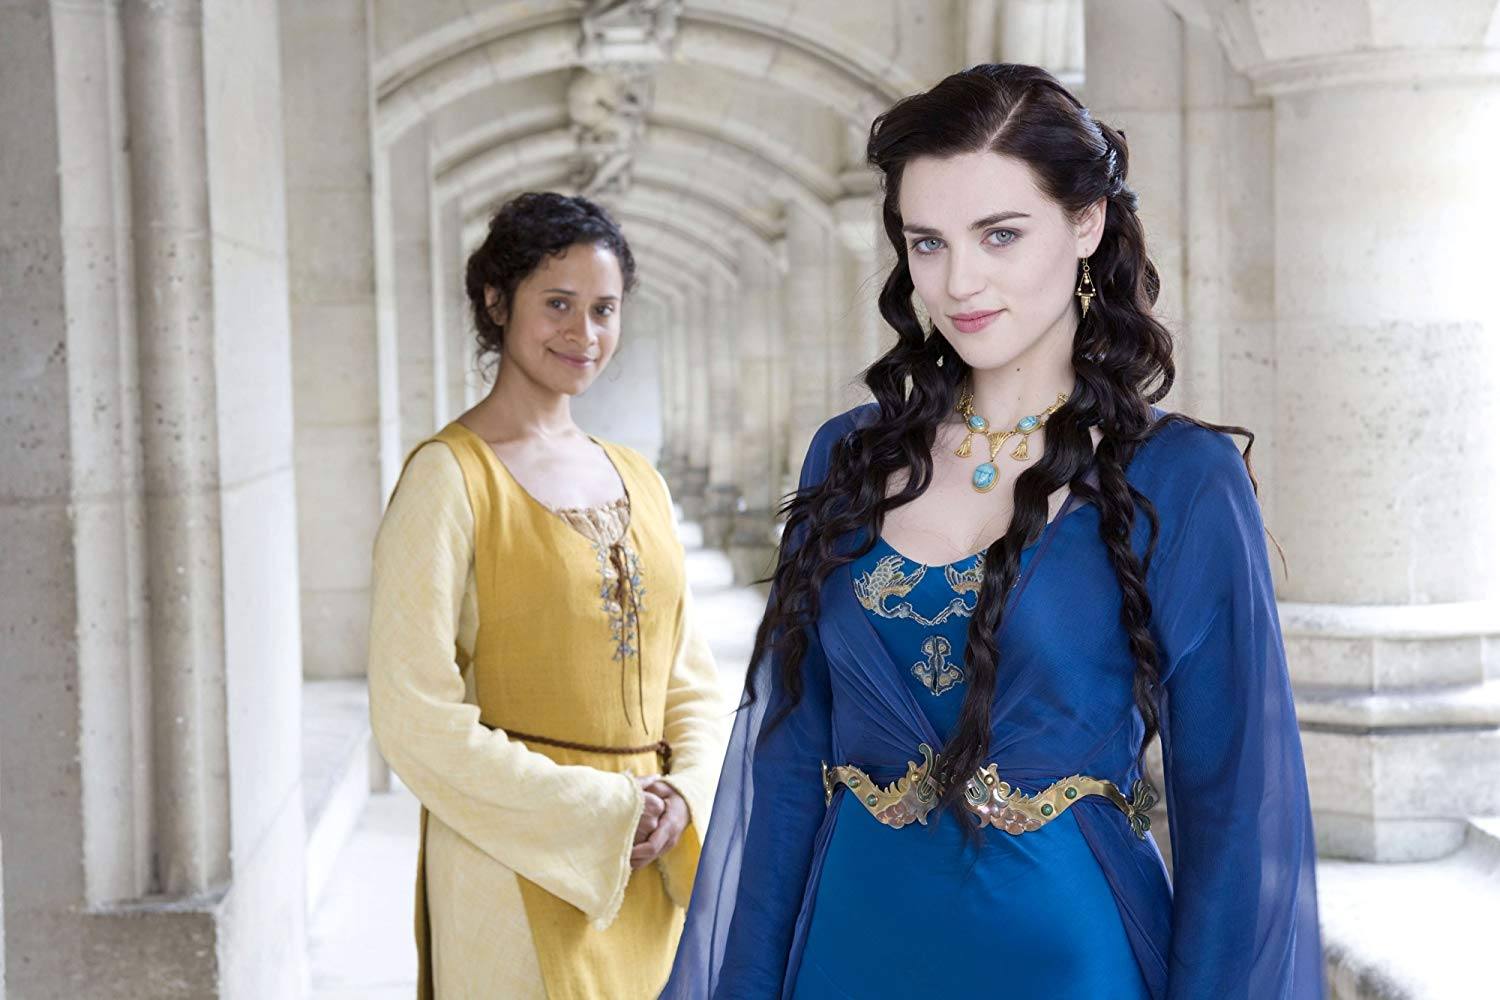 Morgana stands with her maid, Guinevere, in the halls of Camelot